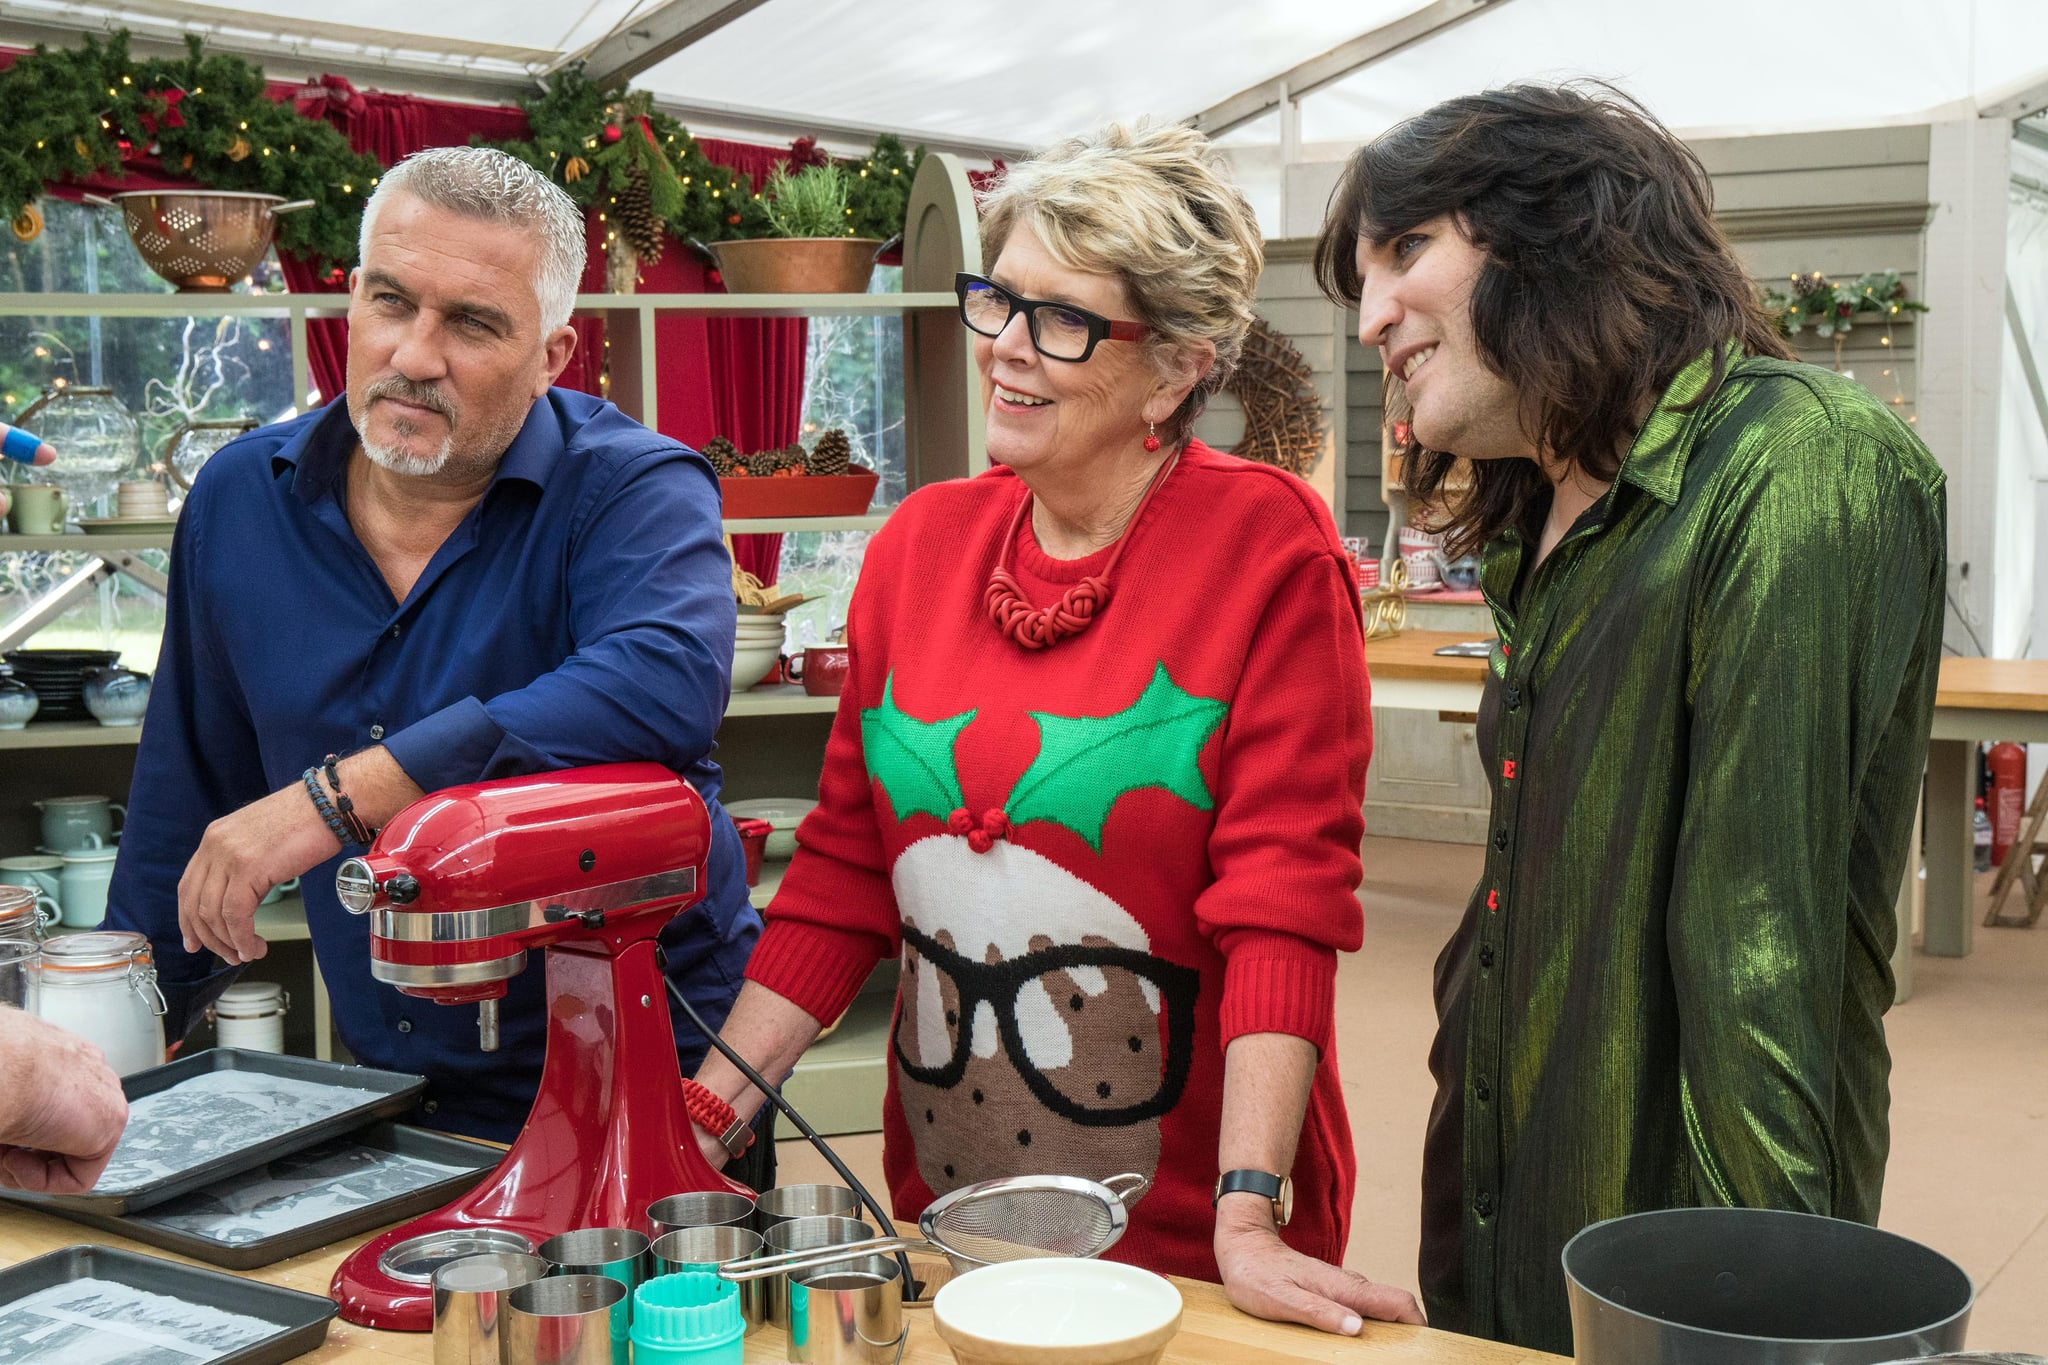 THE GREAT CHRISTMAS BAKE OFF, Judge Paul Hollywood, presenters Prue Leith, Noel Fielding, aired December 25-26, 2017, ph: Mark Bourdillon / Charlotte Medl / Channel 4 / courtesy Everett Collection